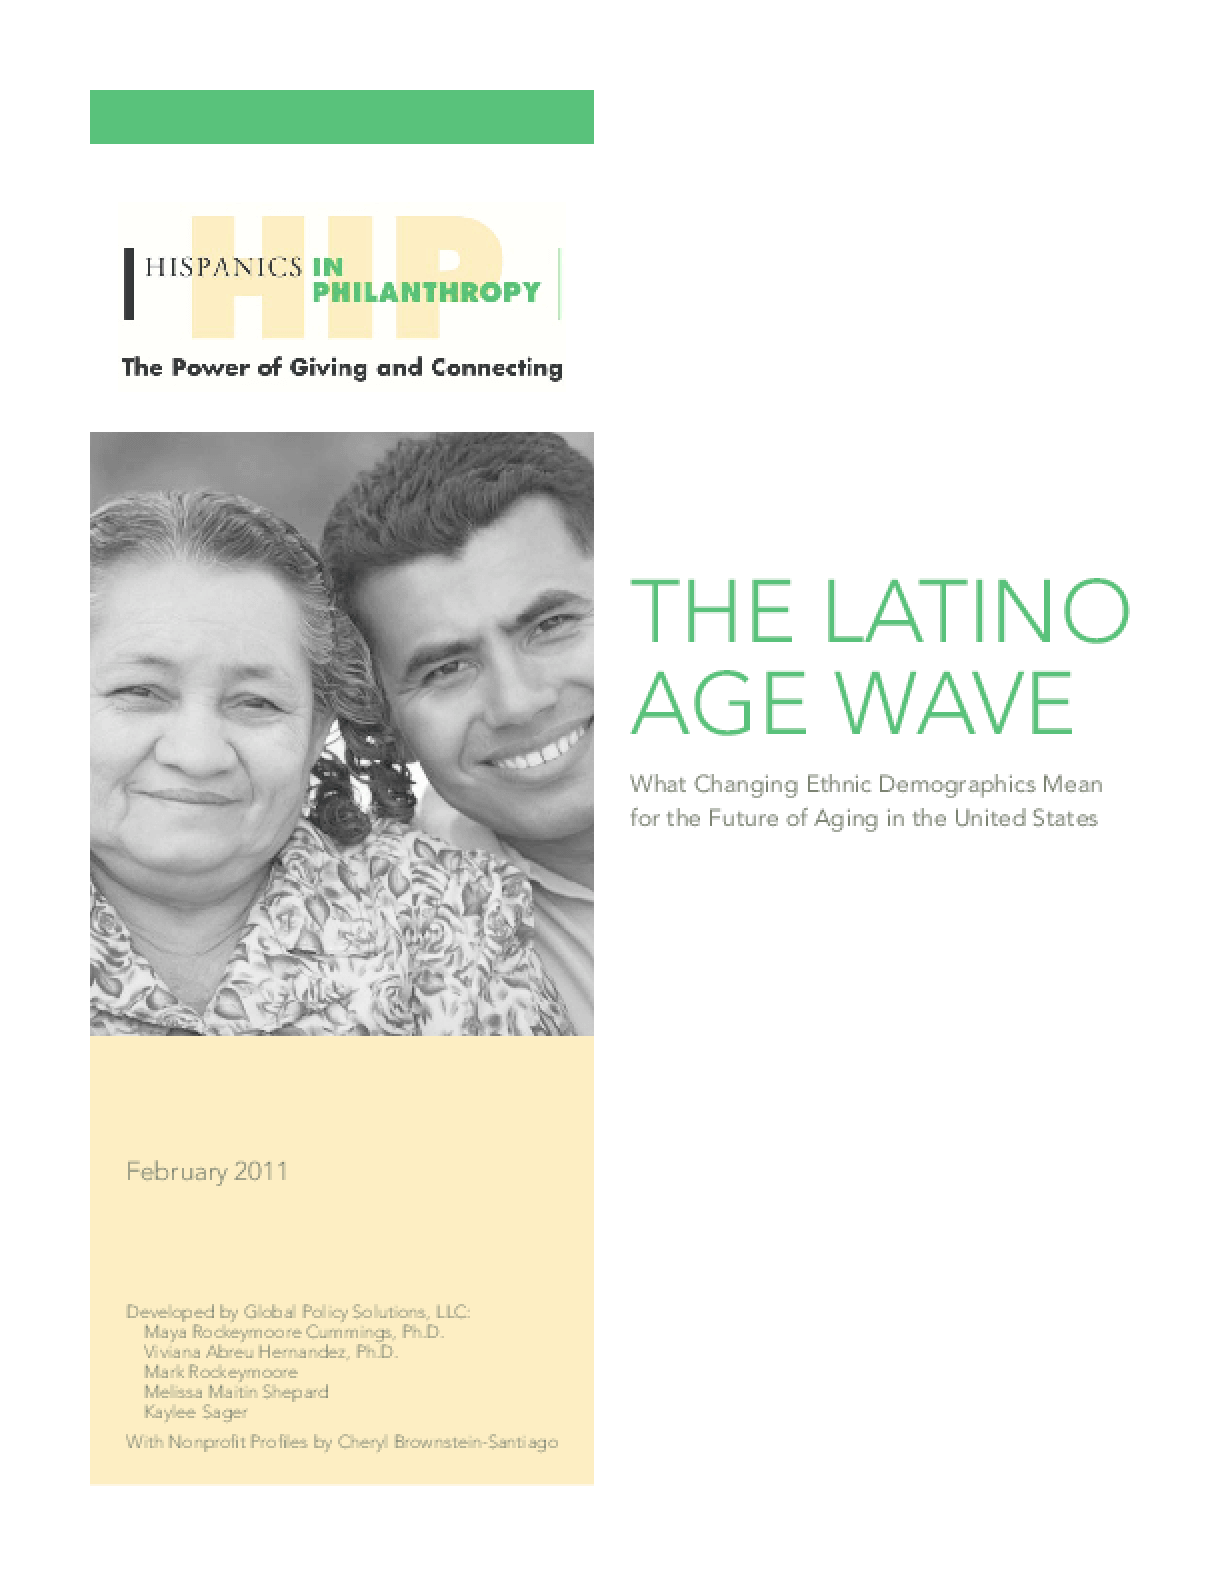 The Latino Age Wave: What Changing Ethnic Demographics Mean for the Future of Aging in the U.S.